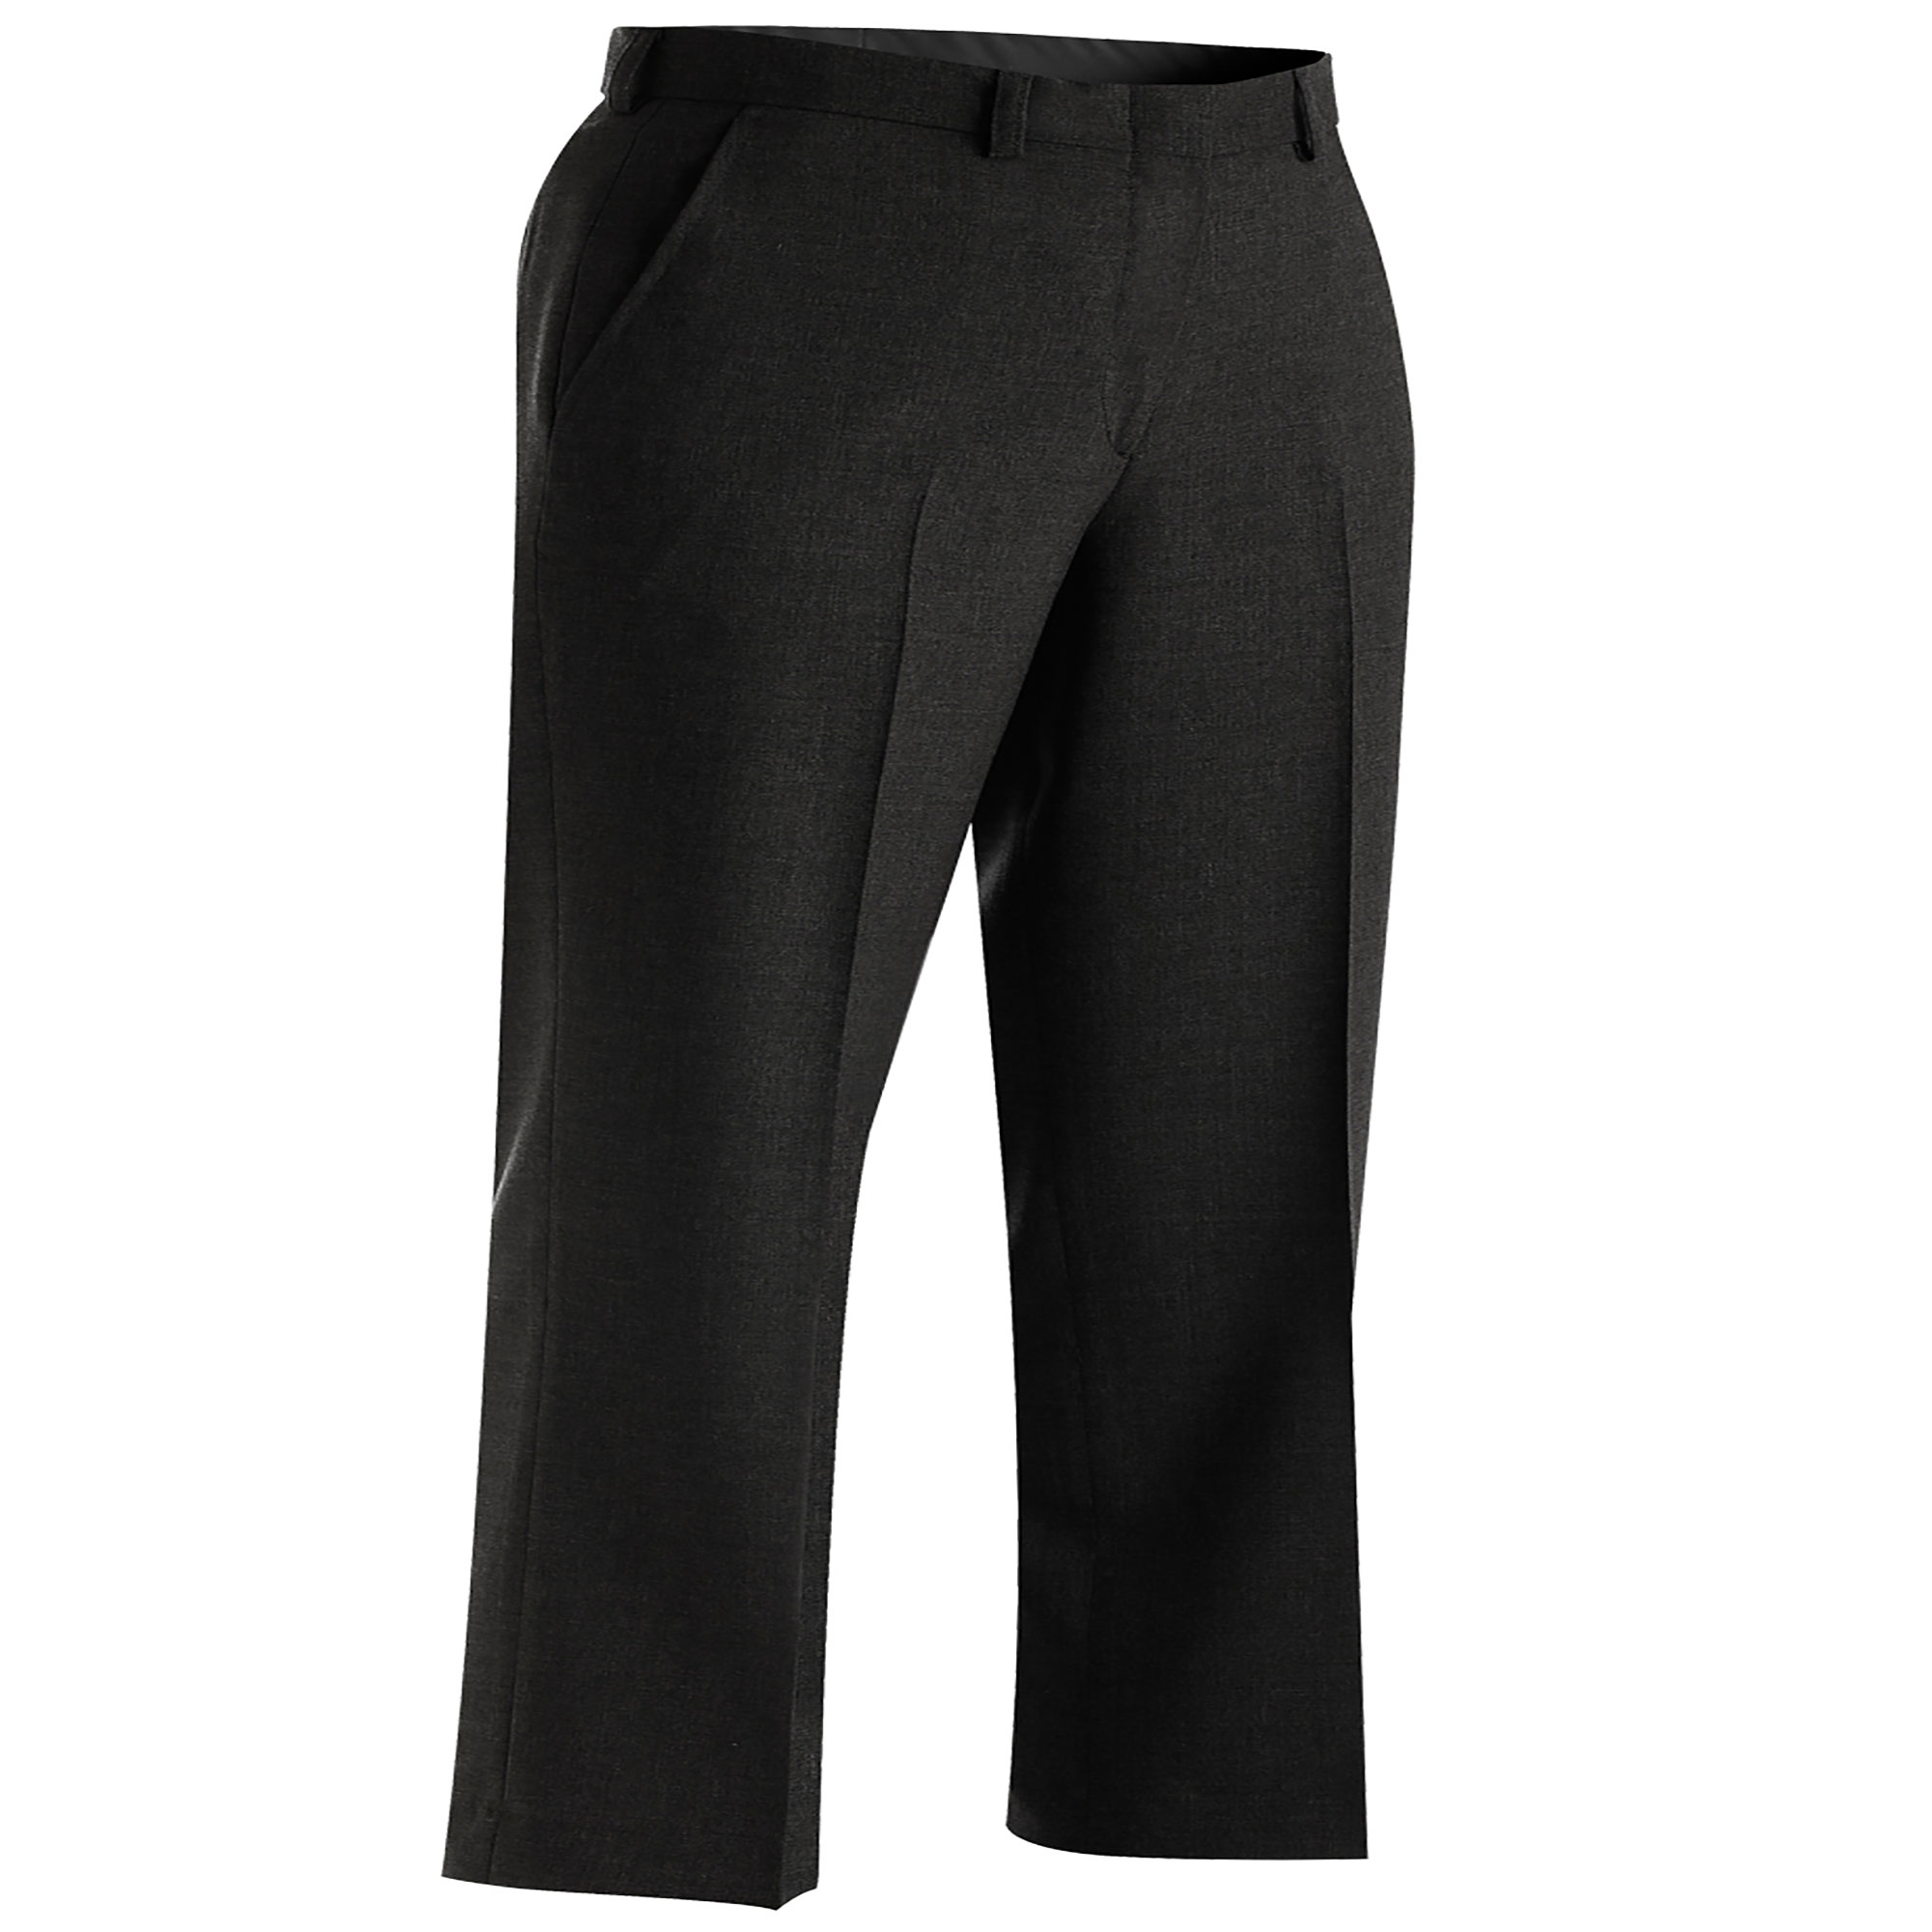 Edwards Garment Women's Flat Front Classic Dress Pant, St...